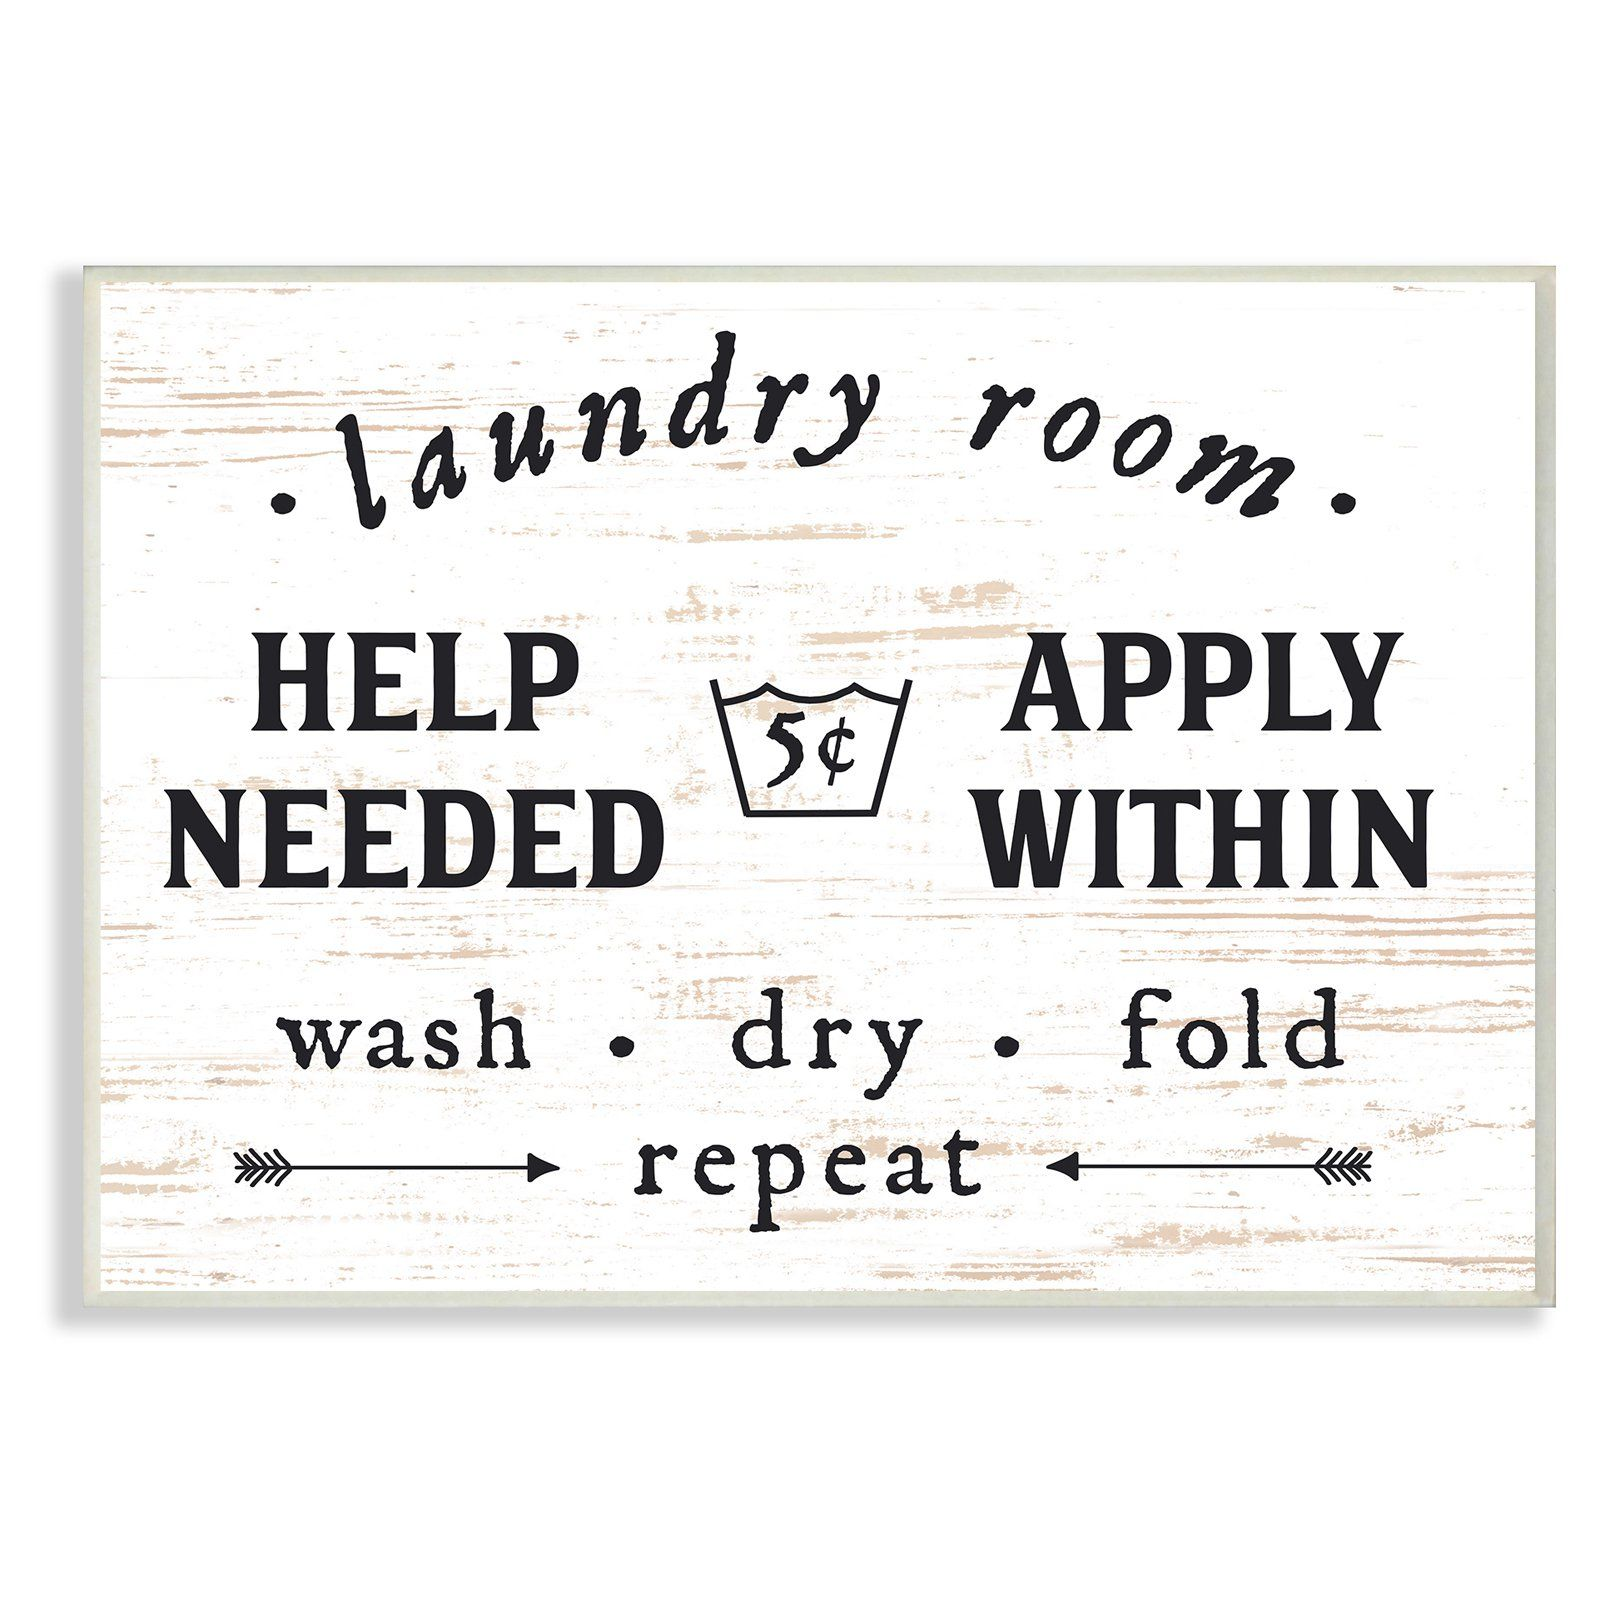 The Stupell Home Decor Collection Laundry Room Help Needed Apply Within Wall Plaque Art In 2020 Laundry Room Signs Laundry Room Wall Decor Laundry Signs